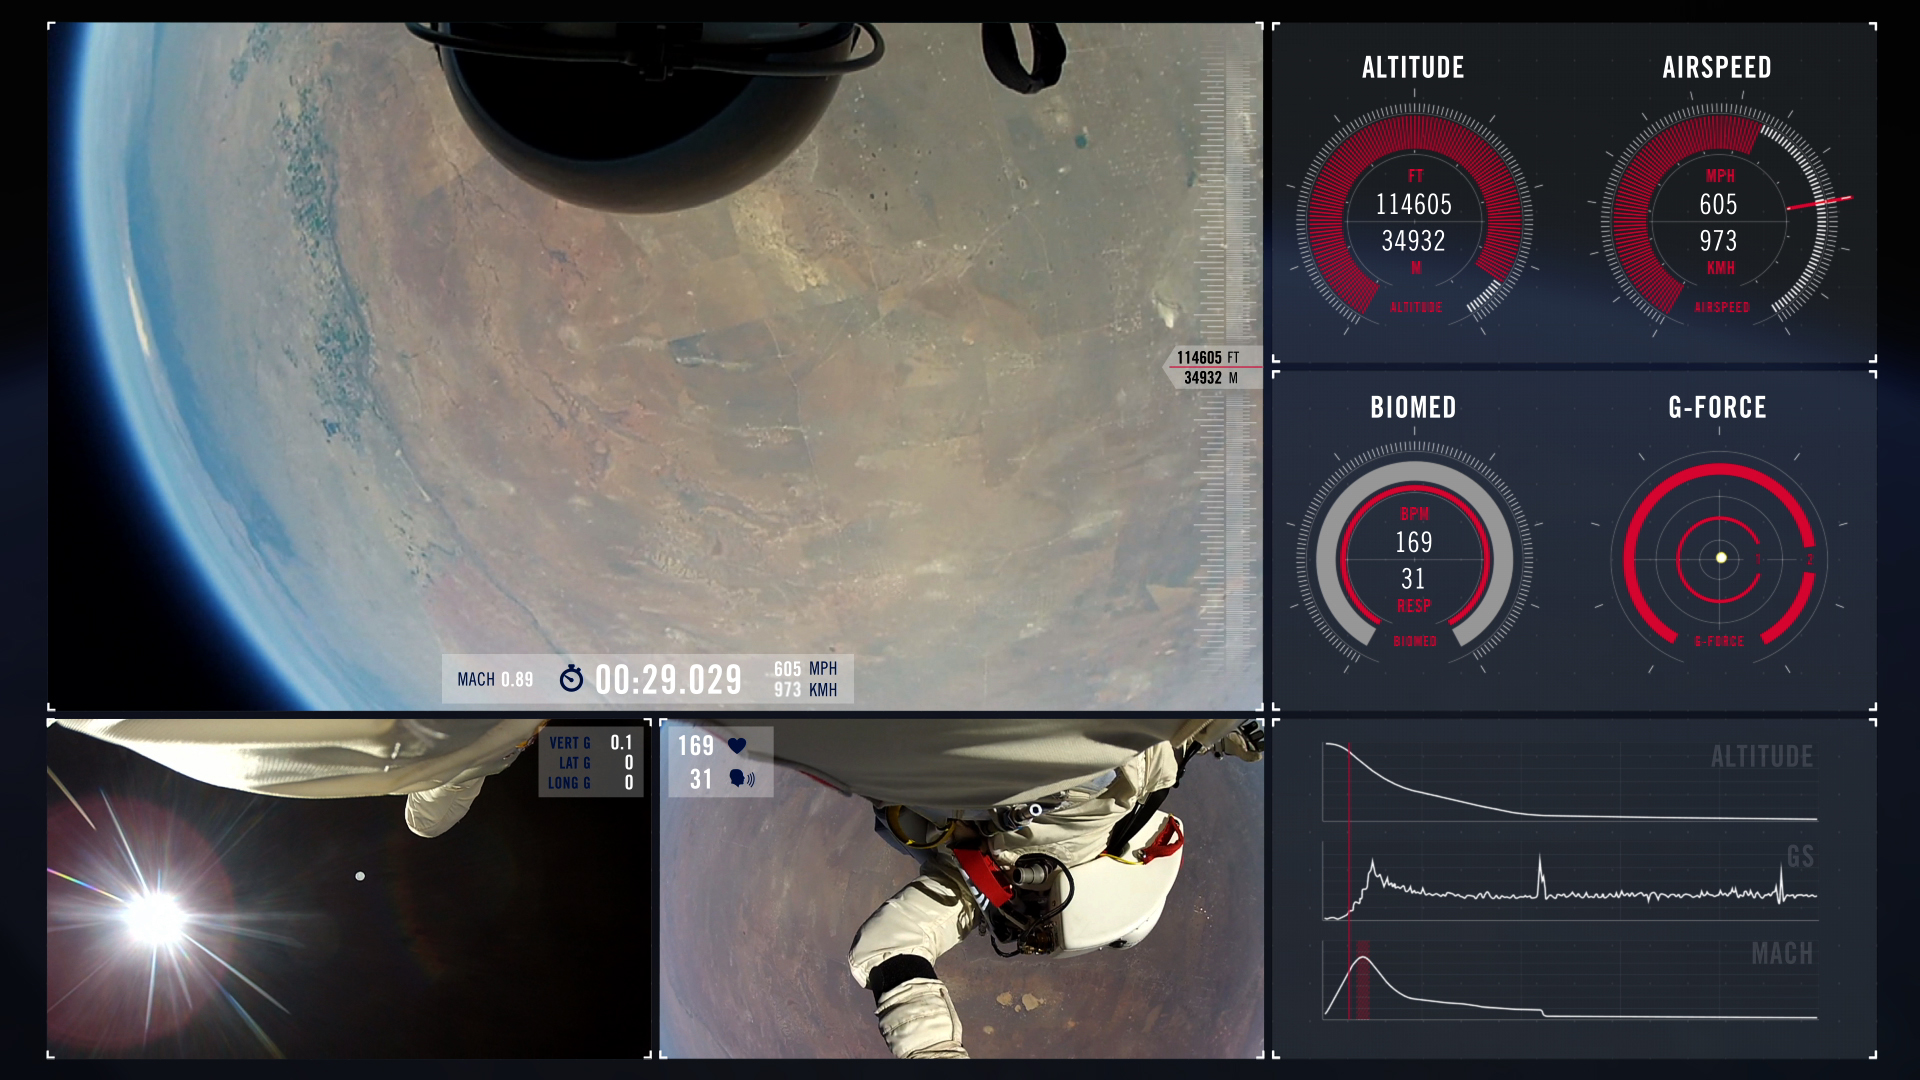 Photo credit: Red Bull Stratos/Red Bull Content Pool. Image courtesy of Red Bull.